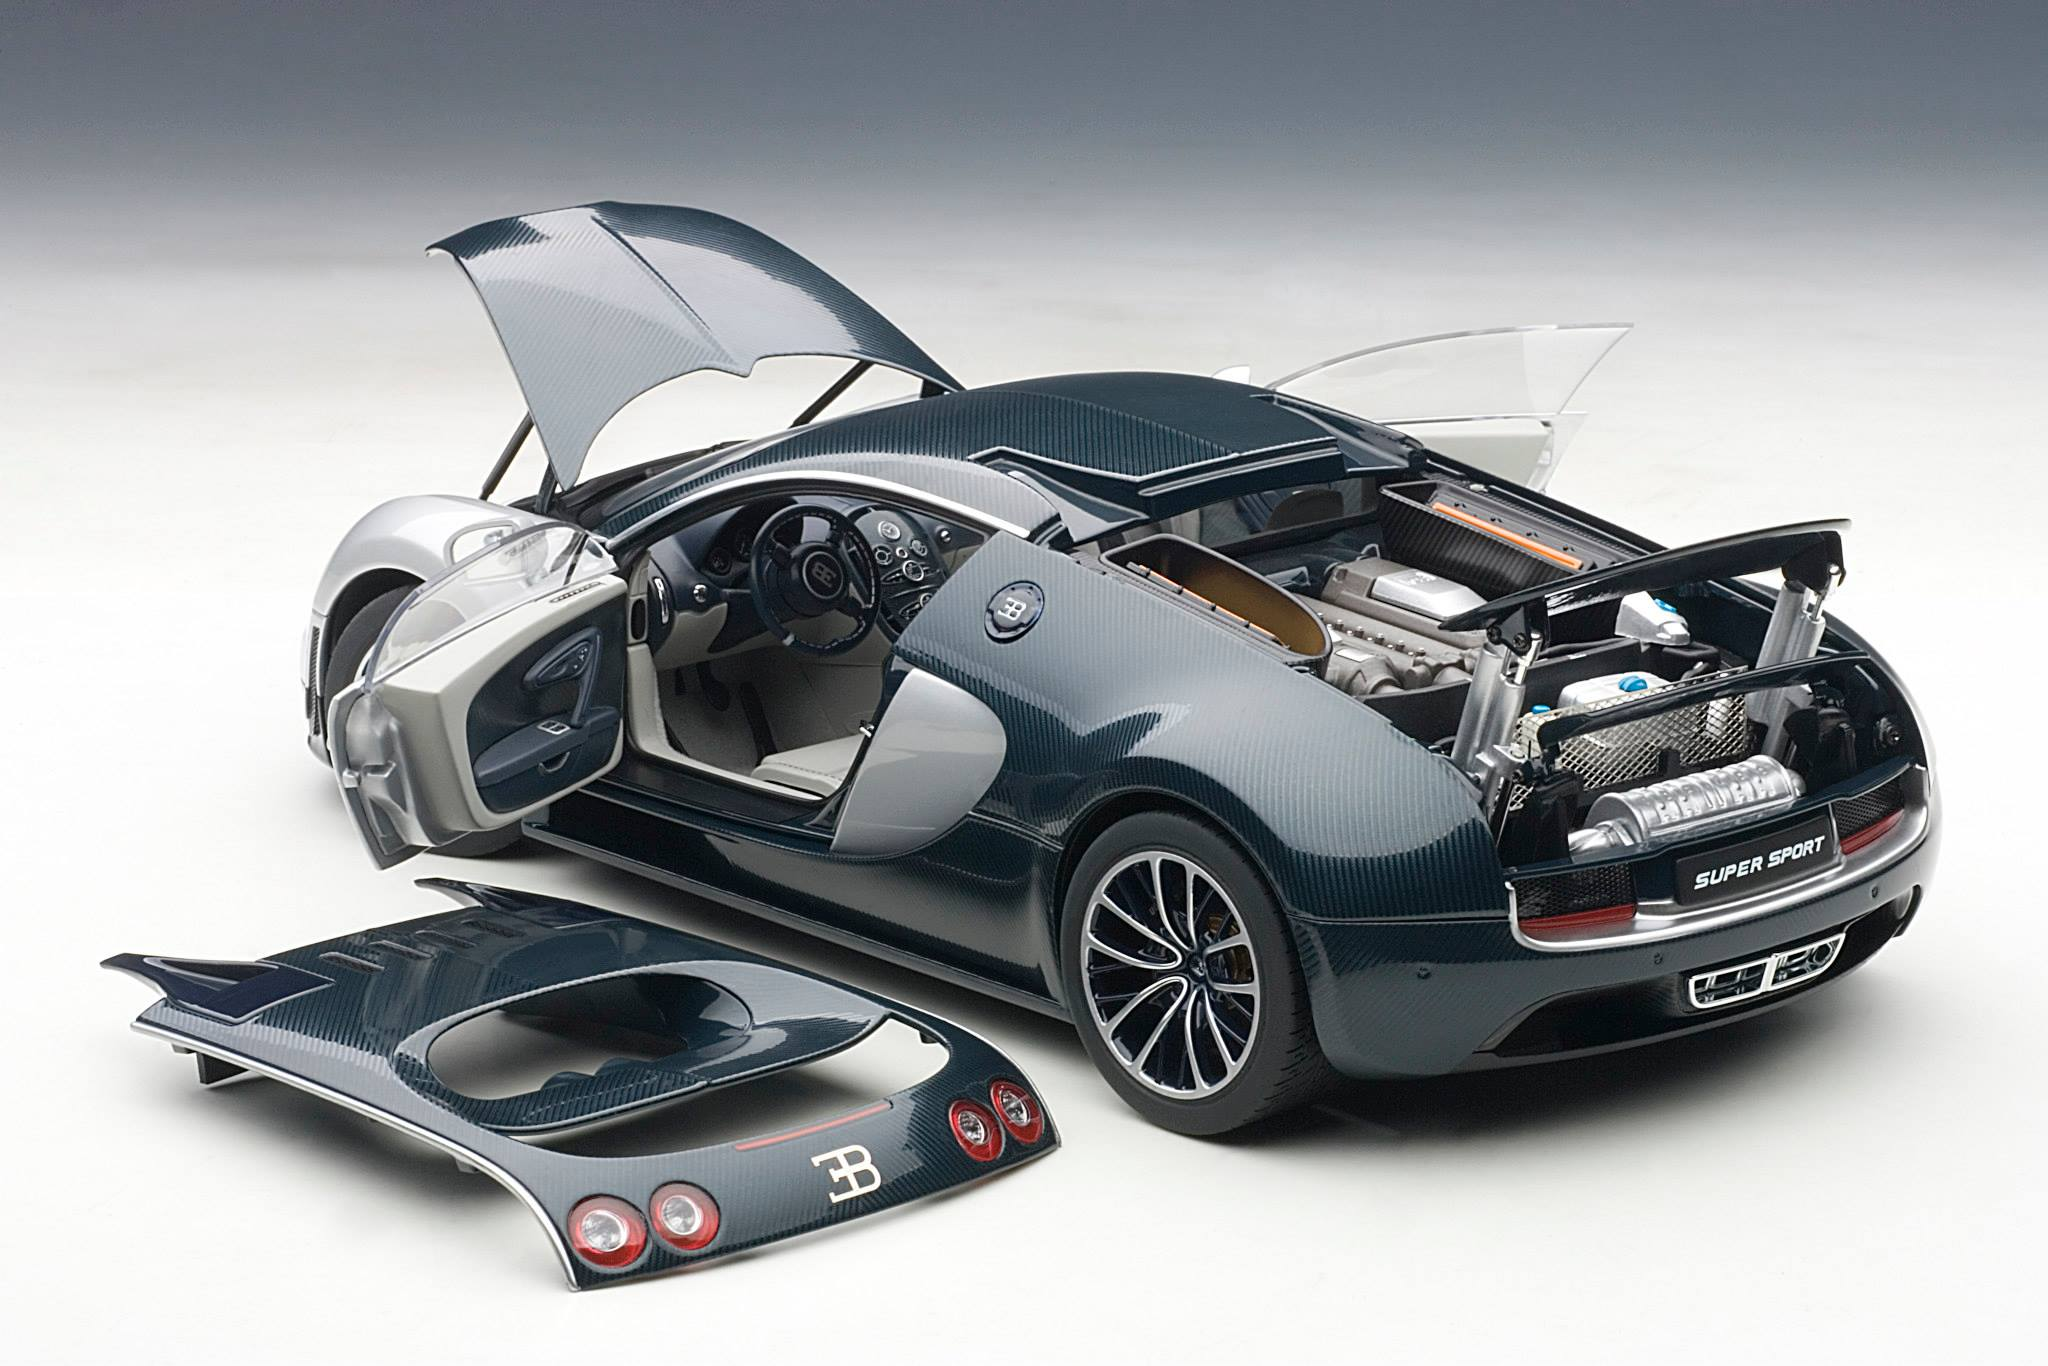 AUTOart: Bugatti Veyron Super Sport - Dark Blue w/ Silver White Doors (70939) in 1:18 scale